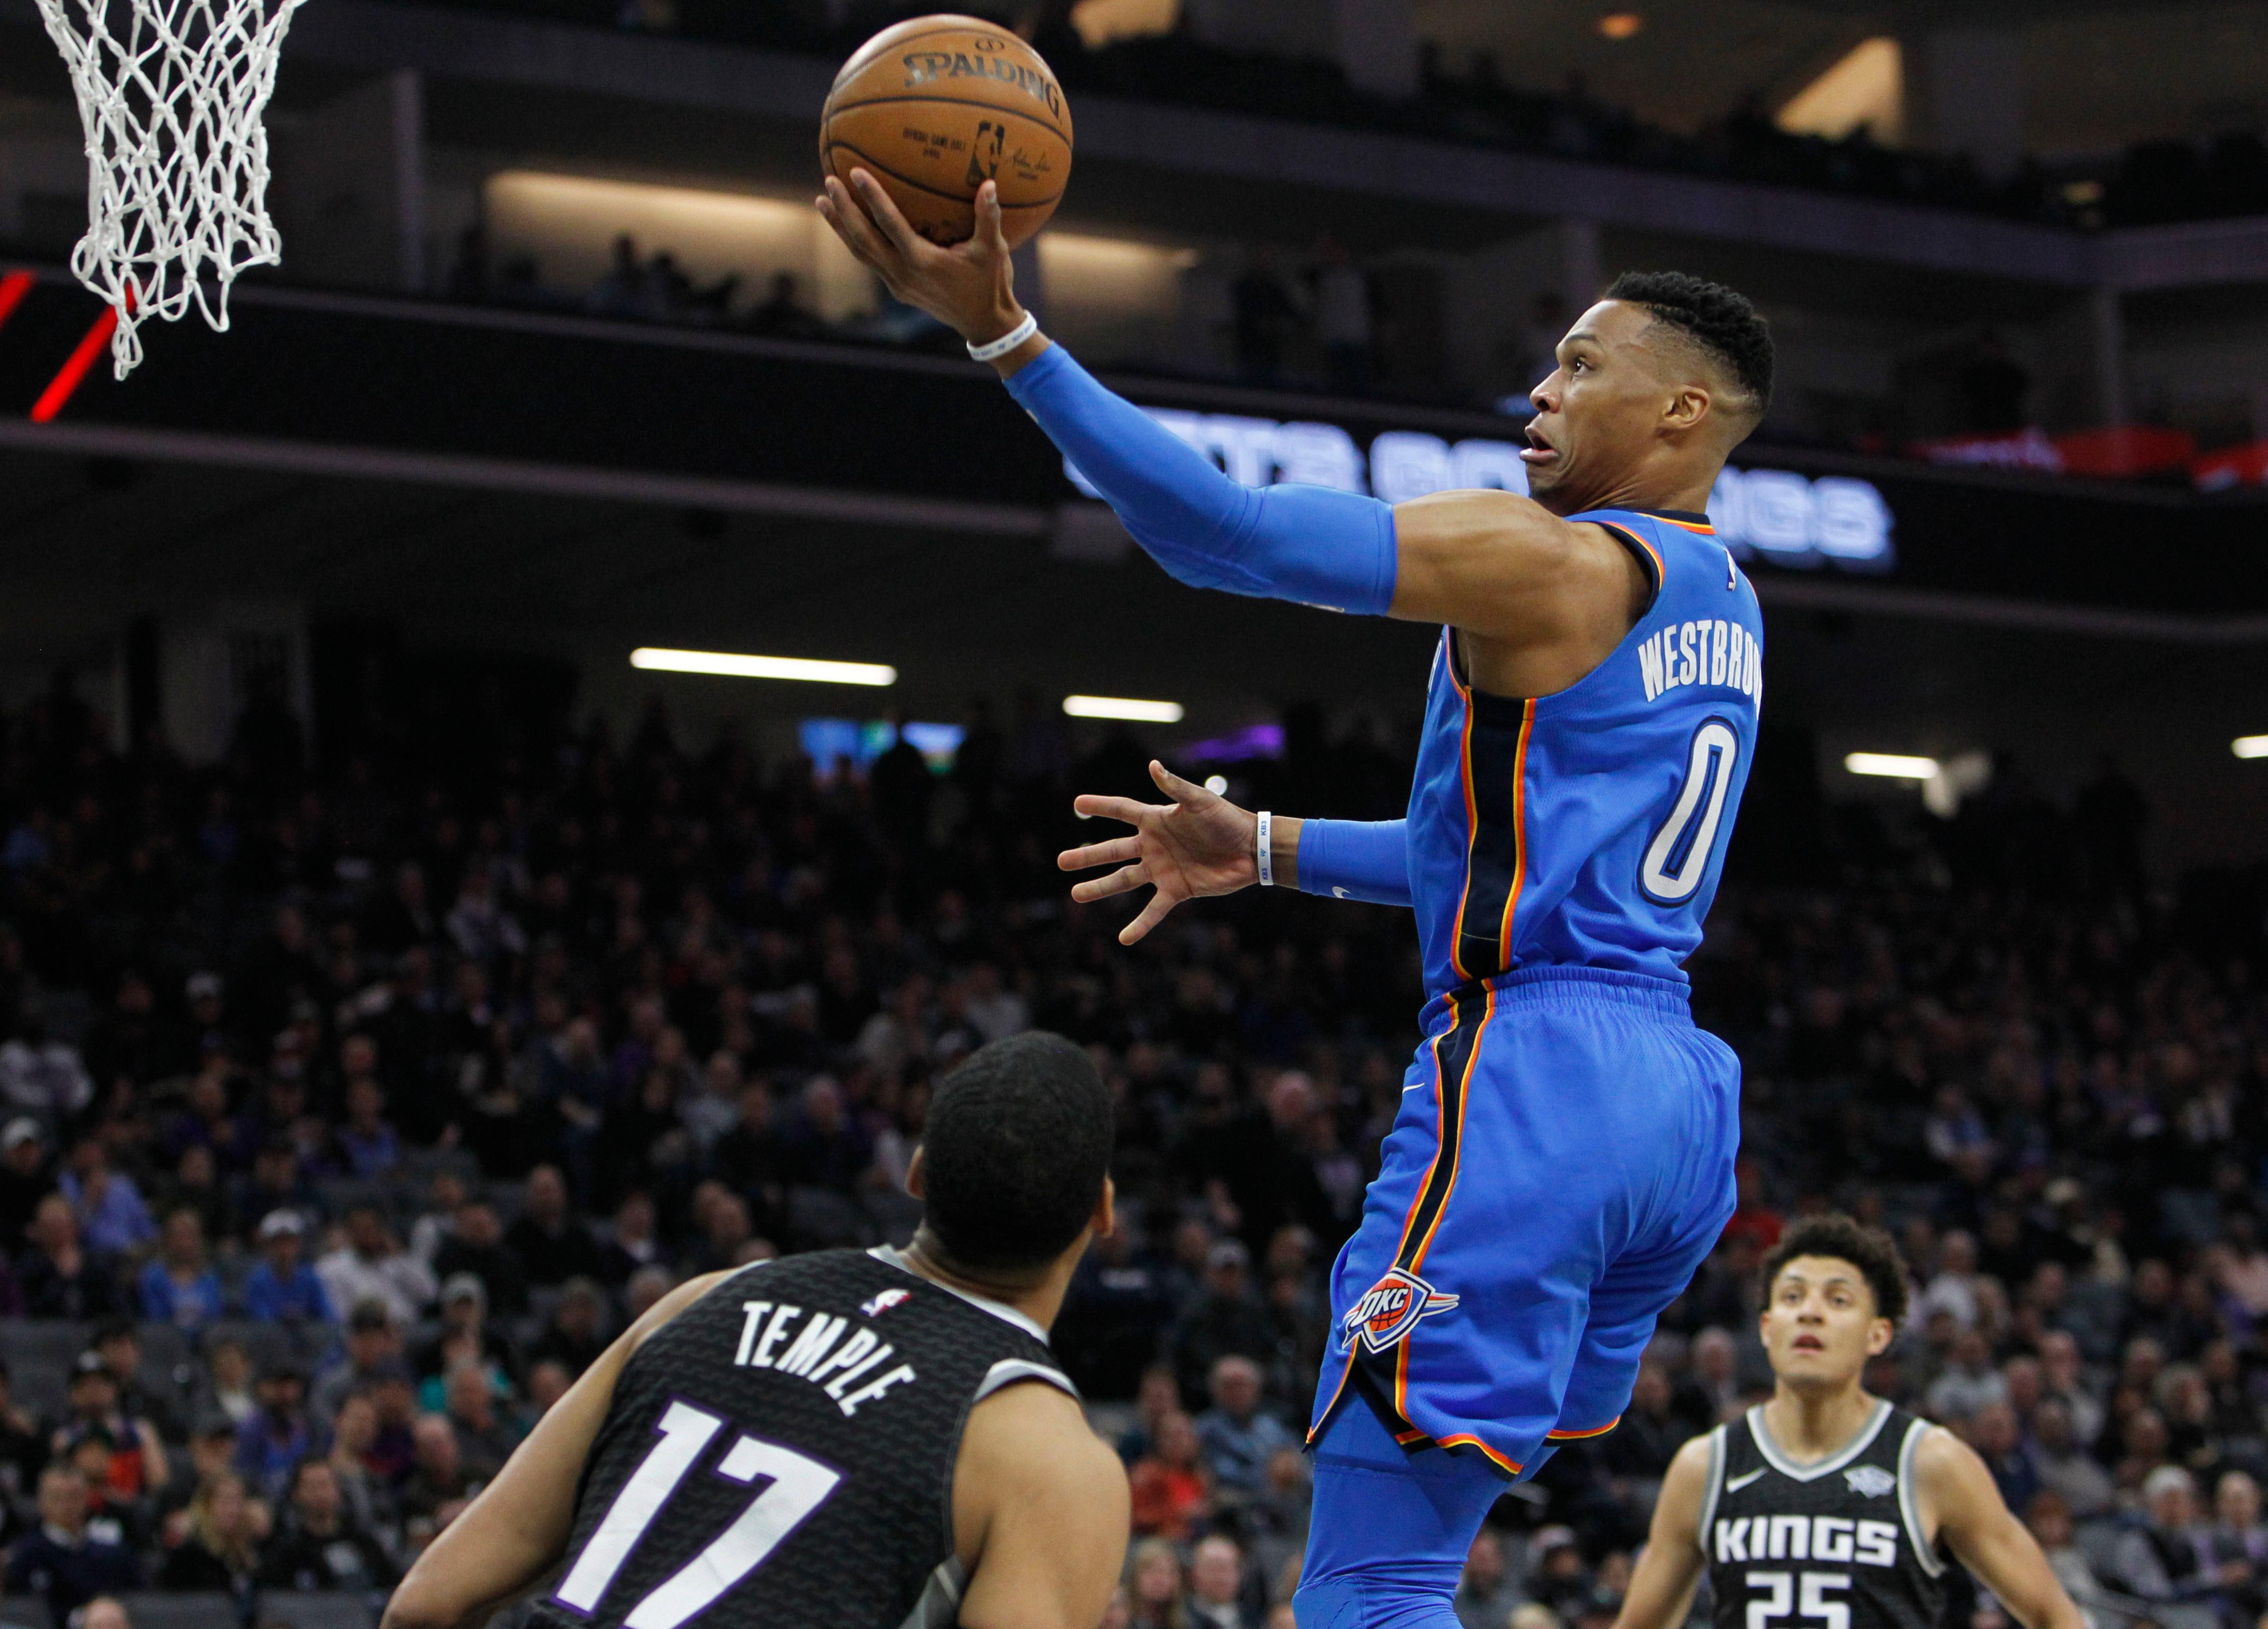 Oklahoma City Thunder guard Russell Westbrook (0) drives to the basket against Sacramento Kings guard Garrett Temple (17) during the first half of an NBA basketball game in Sacramento, Calif., Thursday, Feb. 22, 2018. (AP Photo/Steve Yeater)